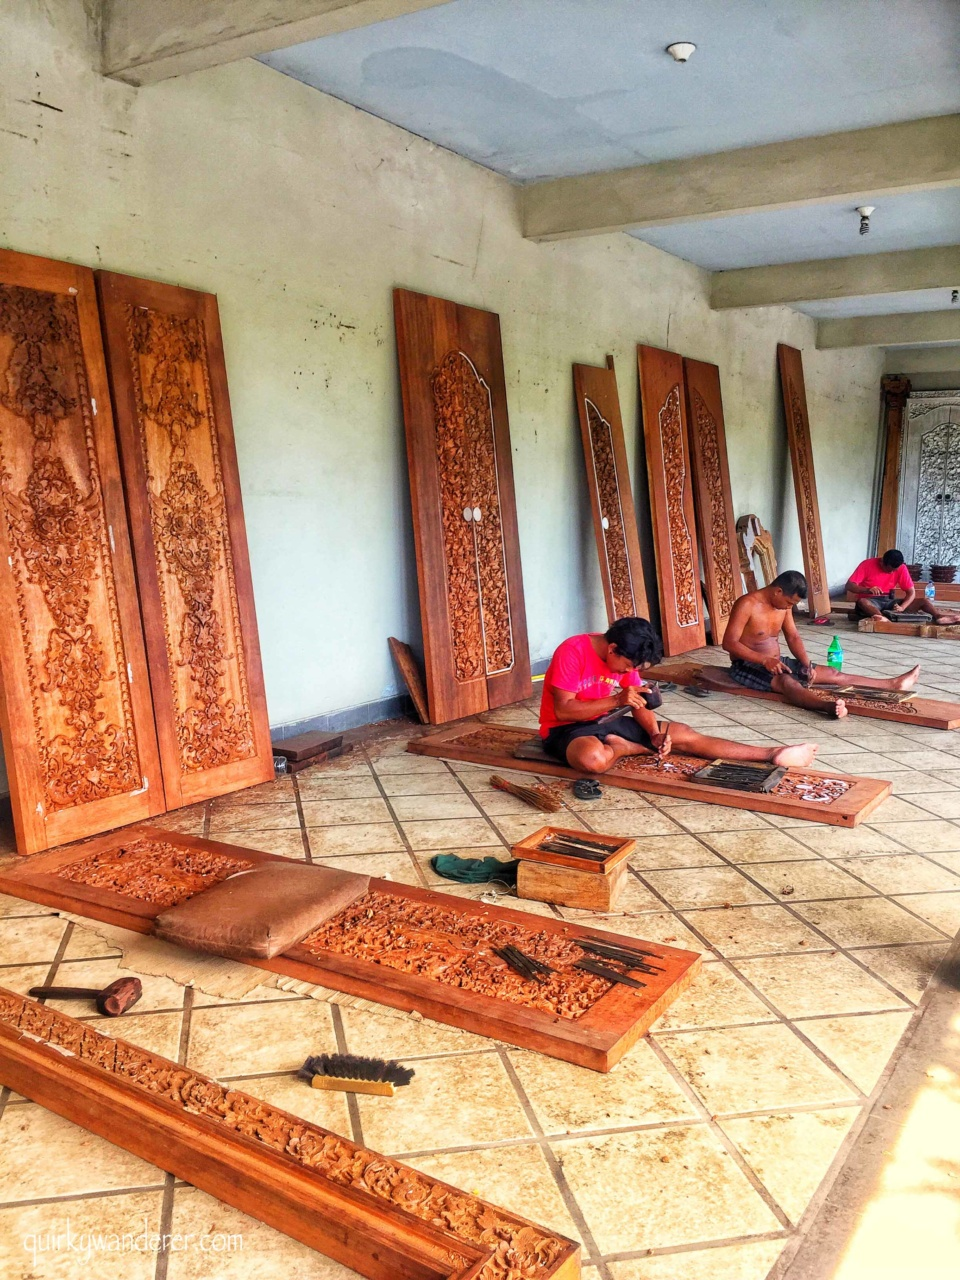 Wood work of Batu Bulan